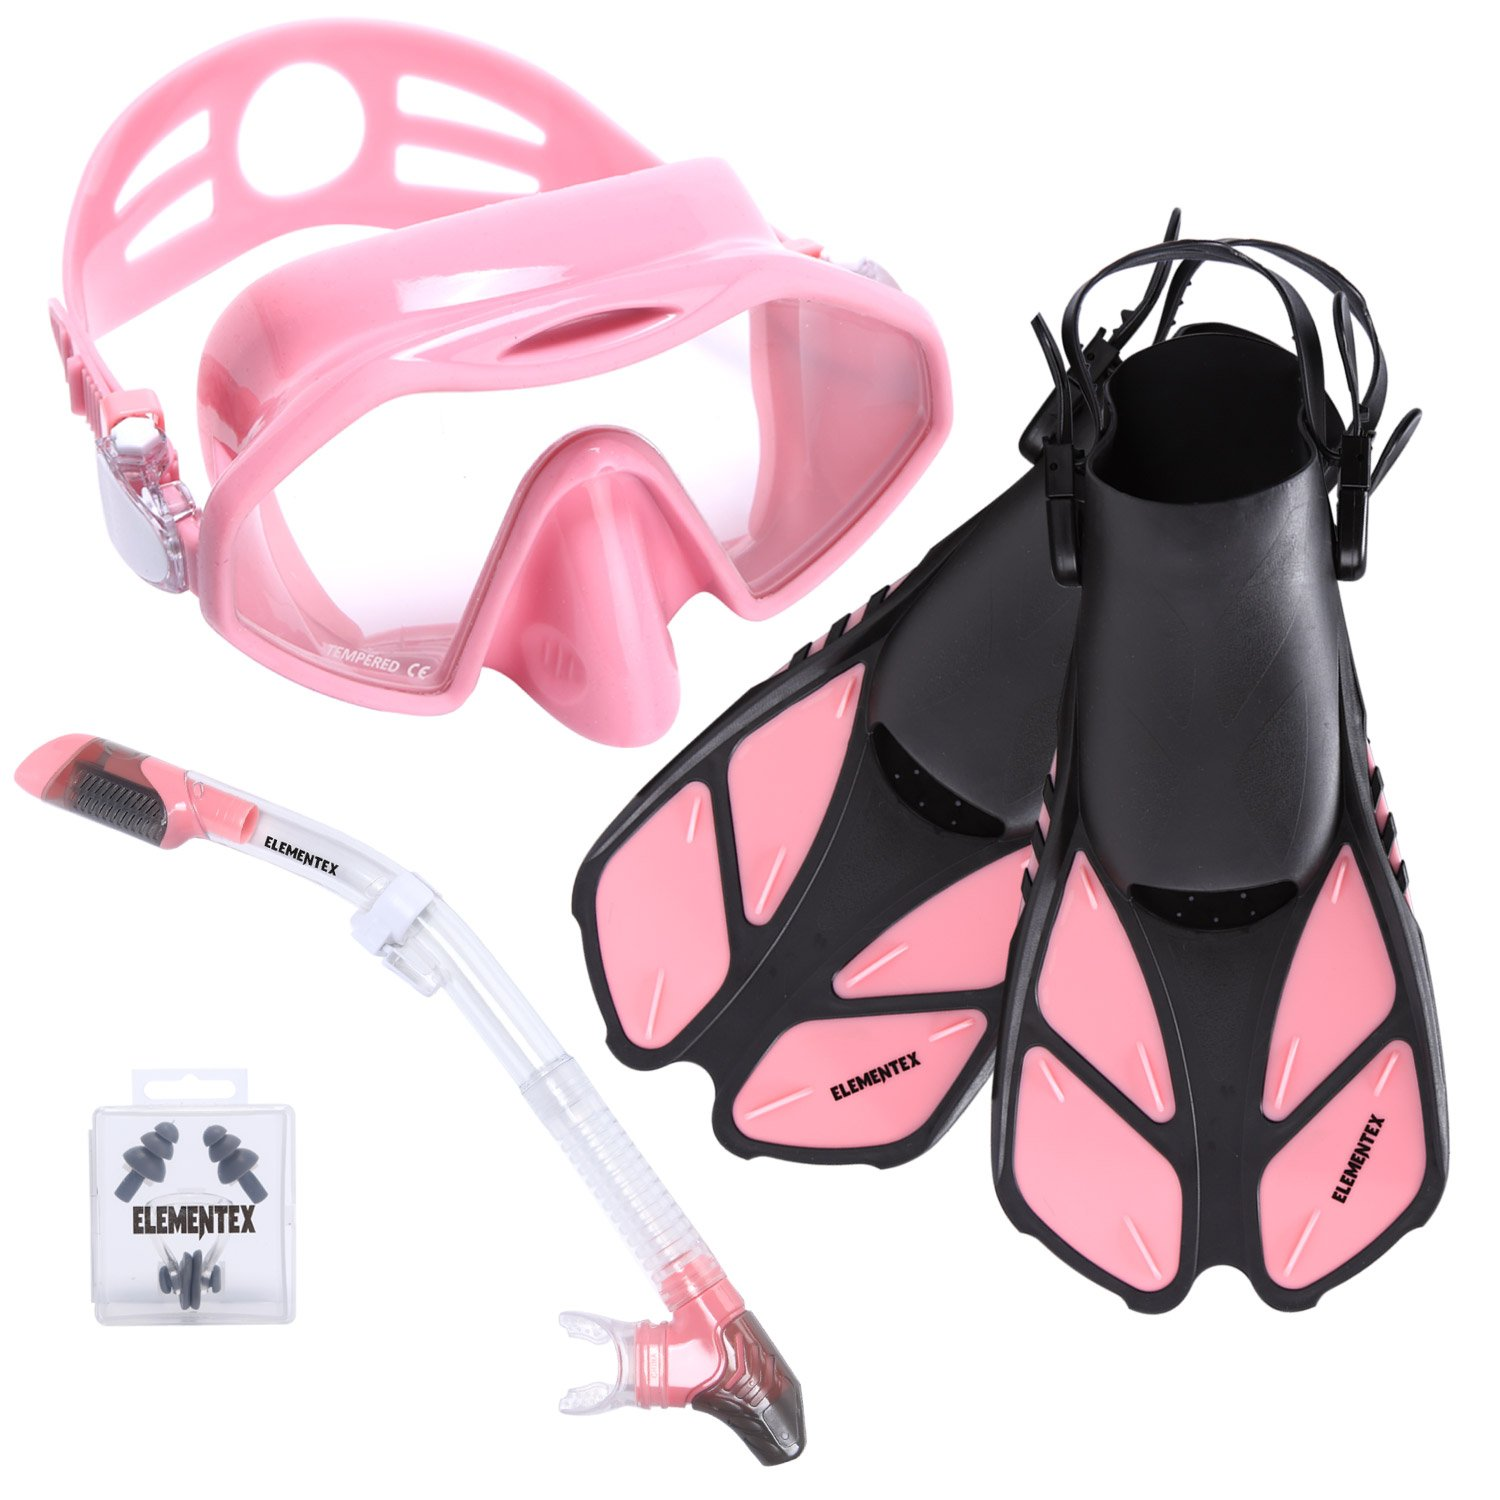 Dry Snorkel Set with Scuba Mask, Fins n Top Valve by ELEMENTEX